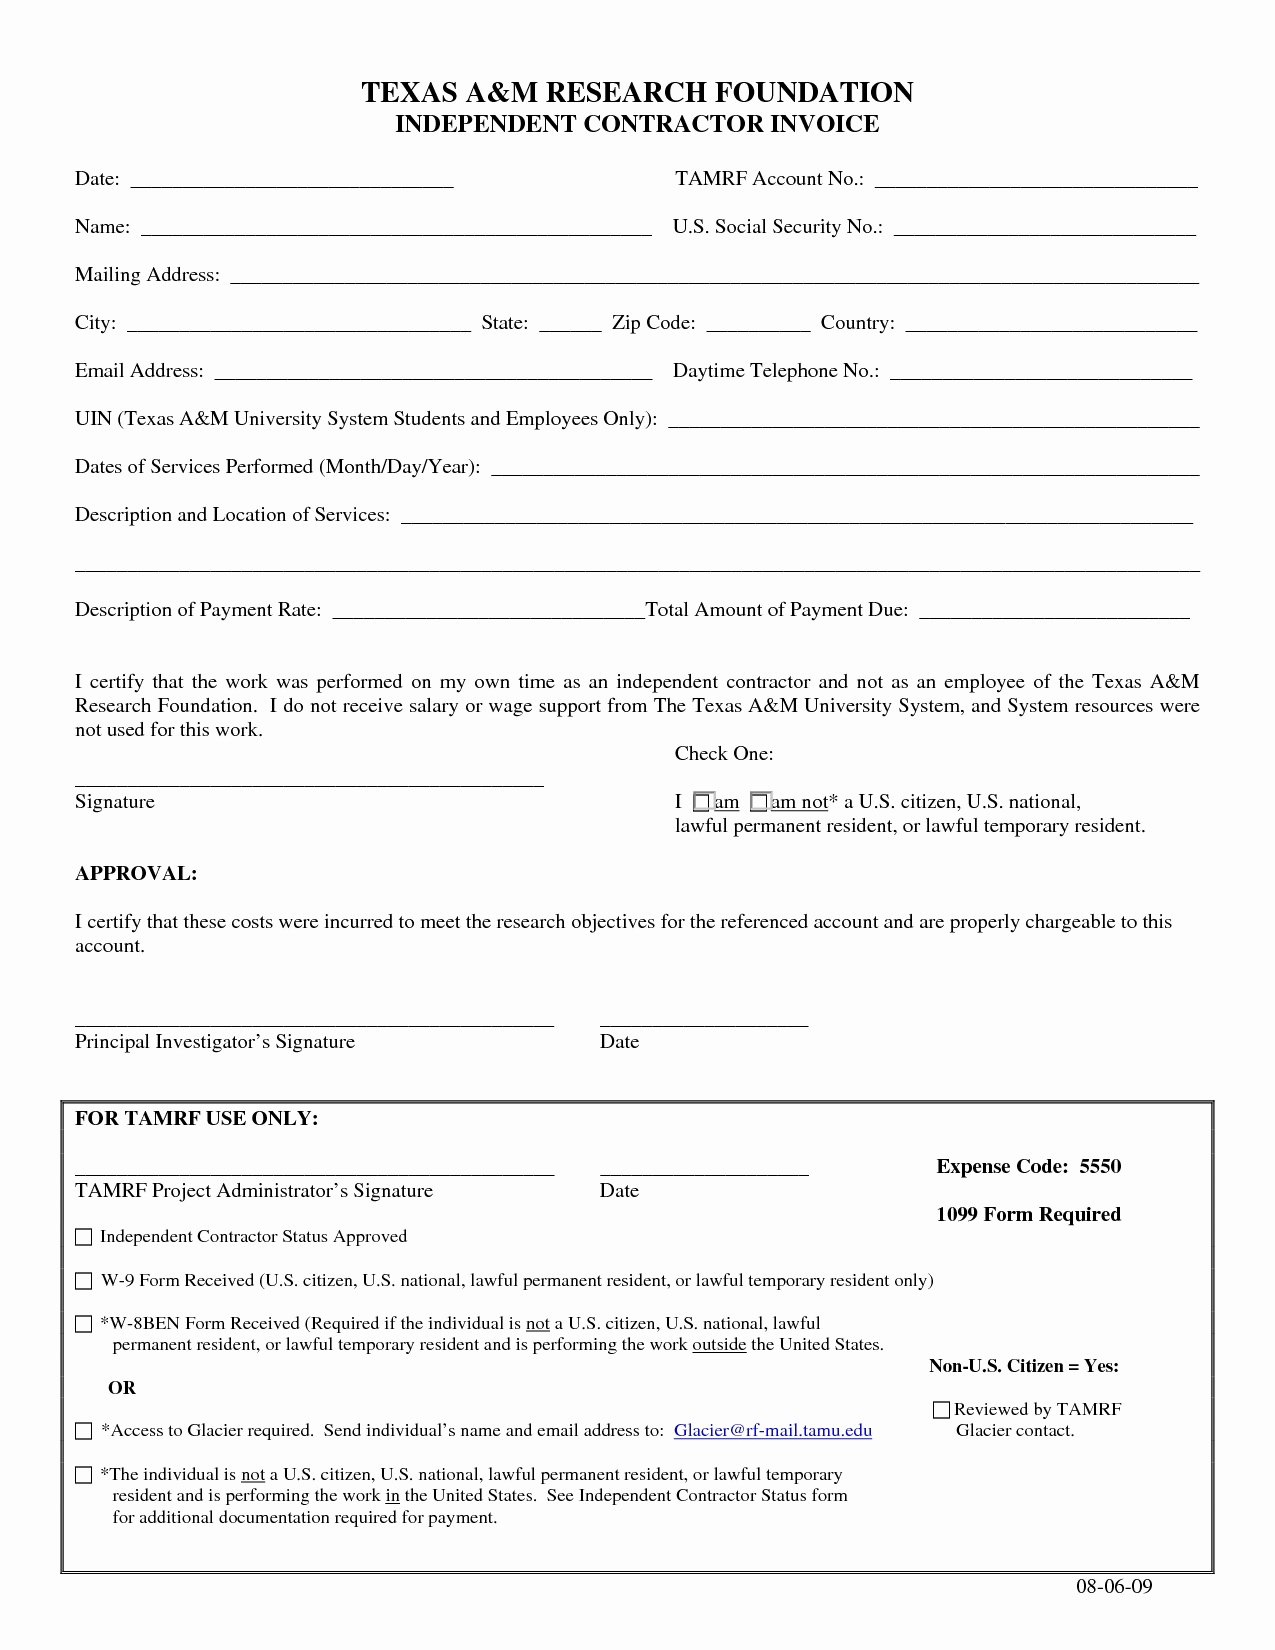 Invoice Template for Contract Work Fresh is An Invoice A Contract Invoice Template Ideas